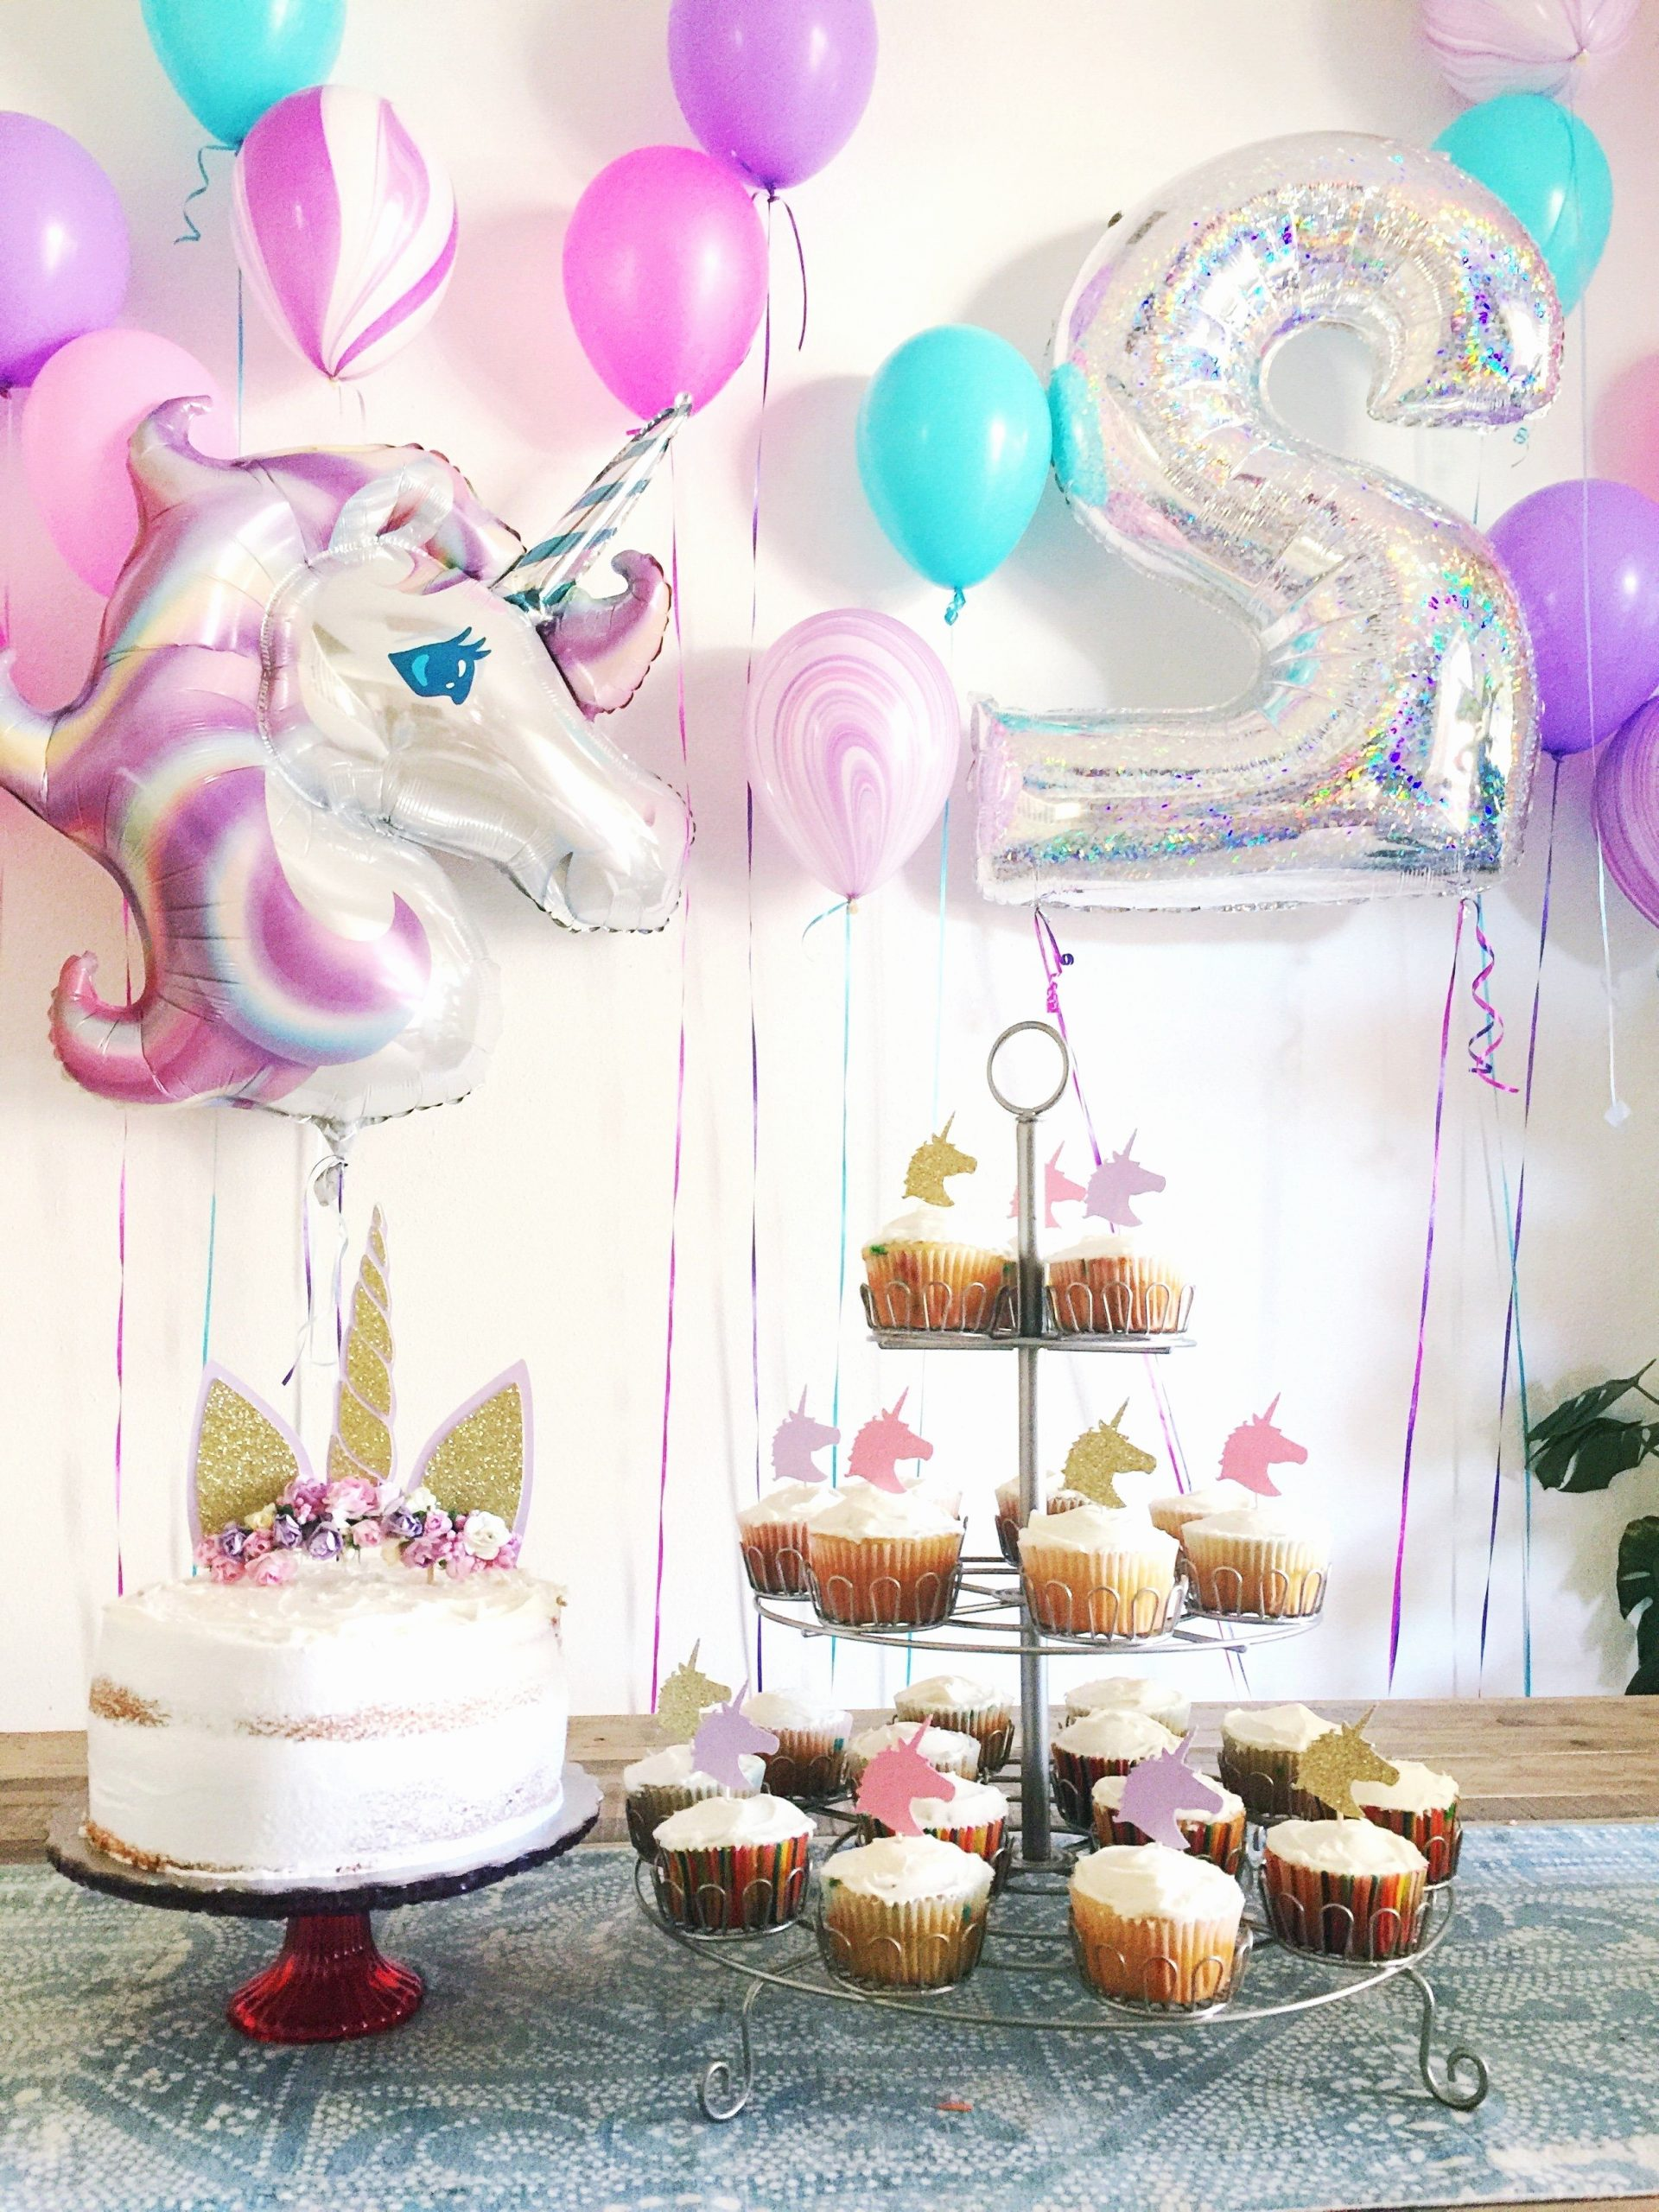 10 Year Old Birthday Decoration Ideas Awesome 10 Year Old Girl Birthday Party Ideas